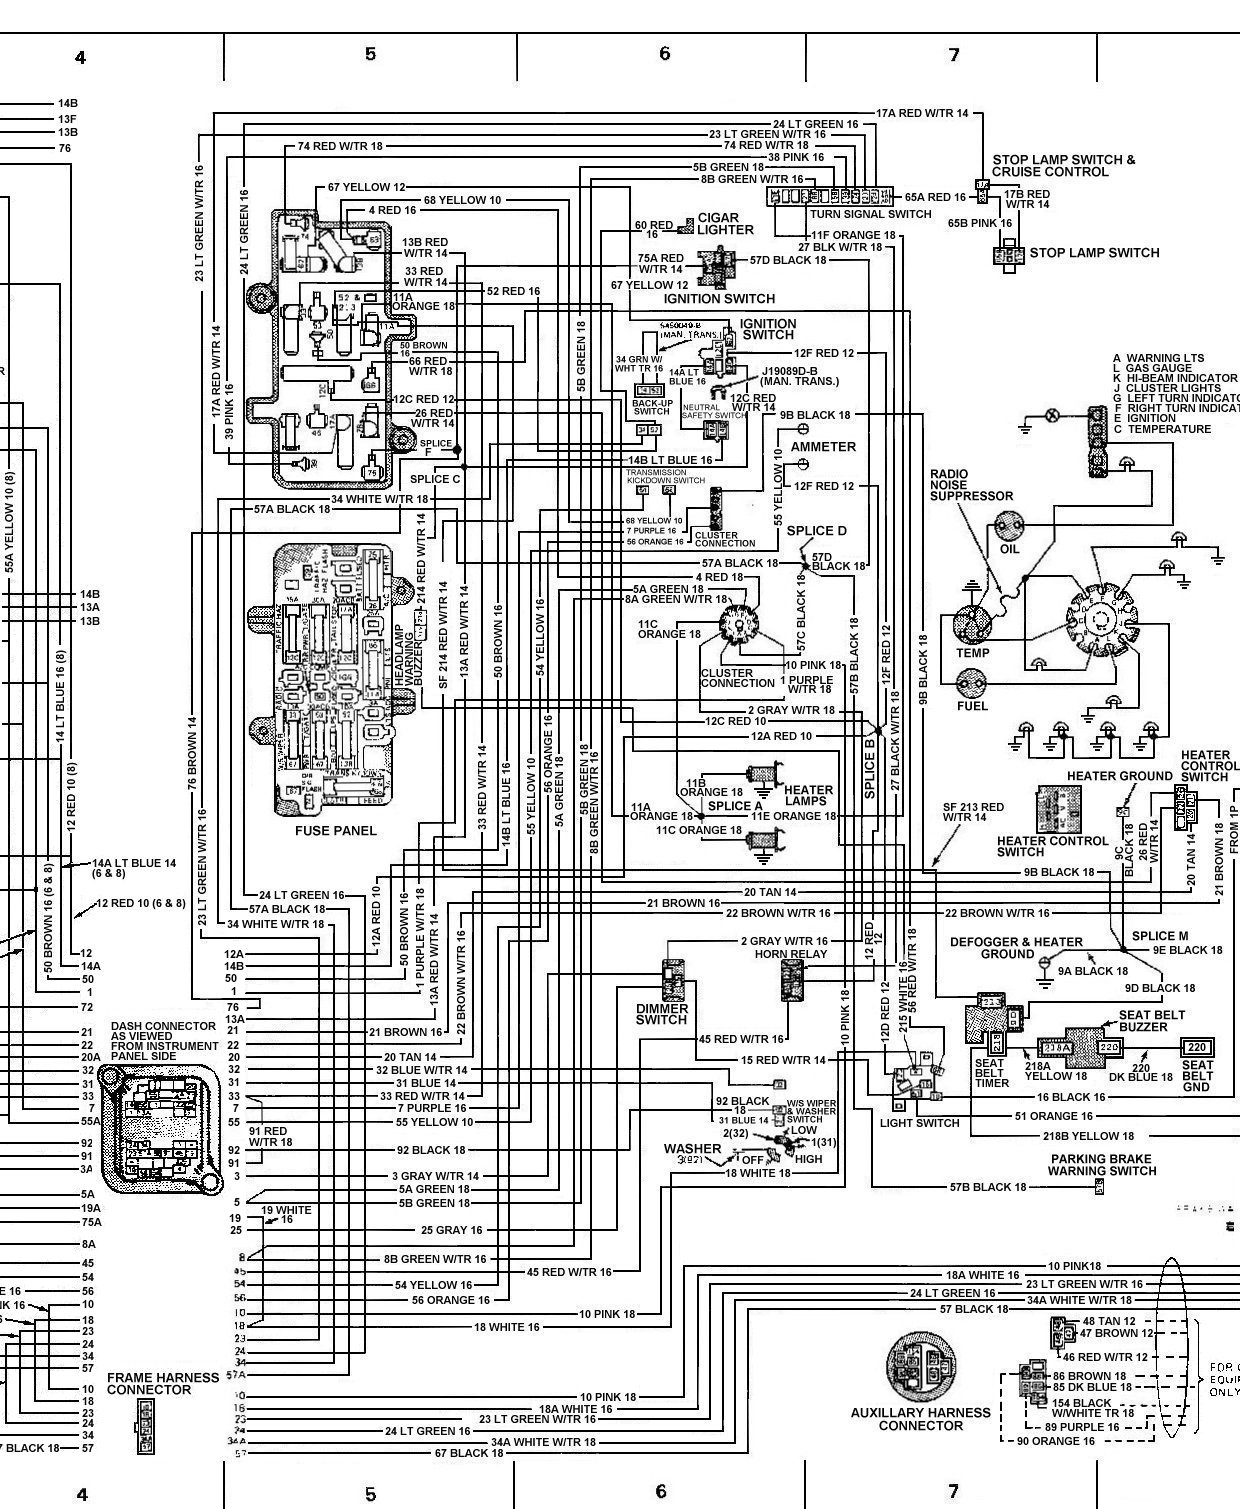 07 kia sportage wiring diagram for 1998 honda civic dx window crank